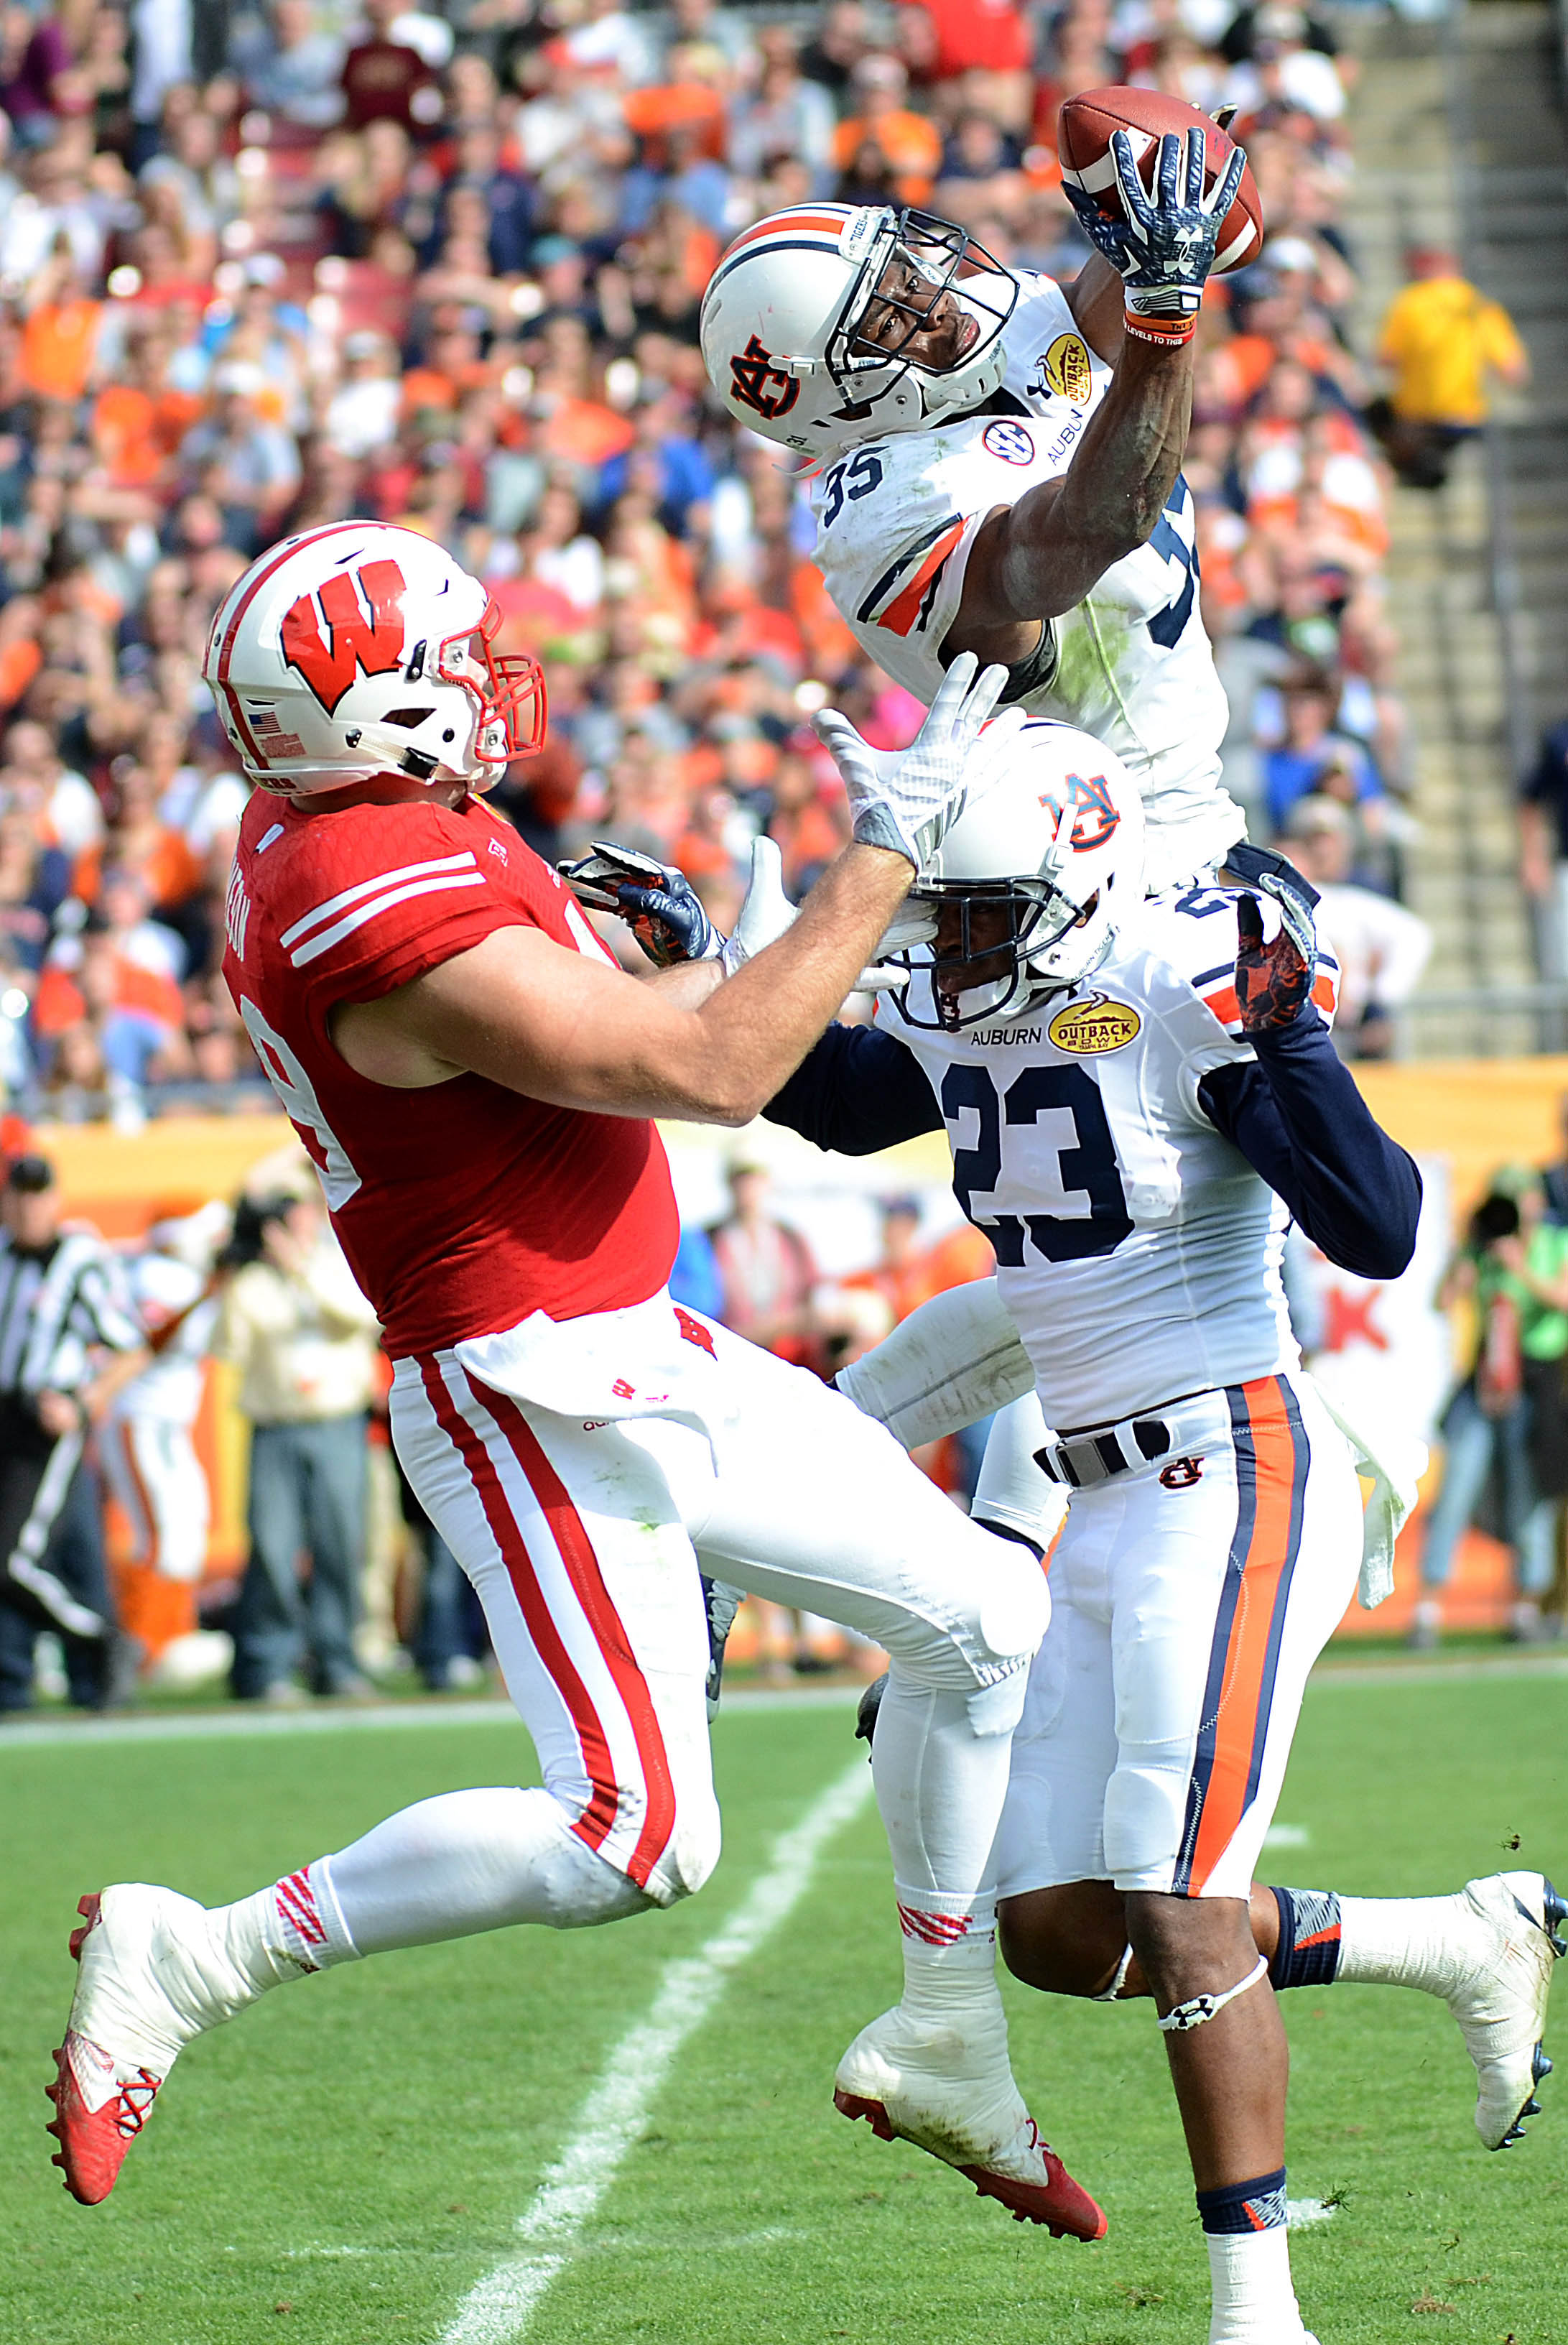 Rudy Ford defends the Wisconsin receiver while Jermaine Whitehead pulls down the INT. One of his six.